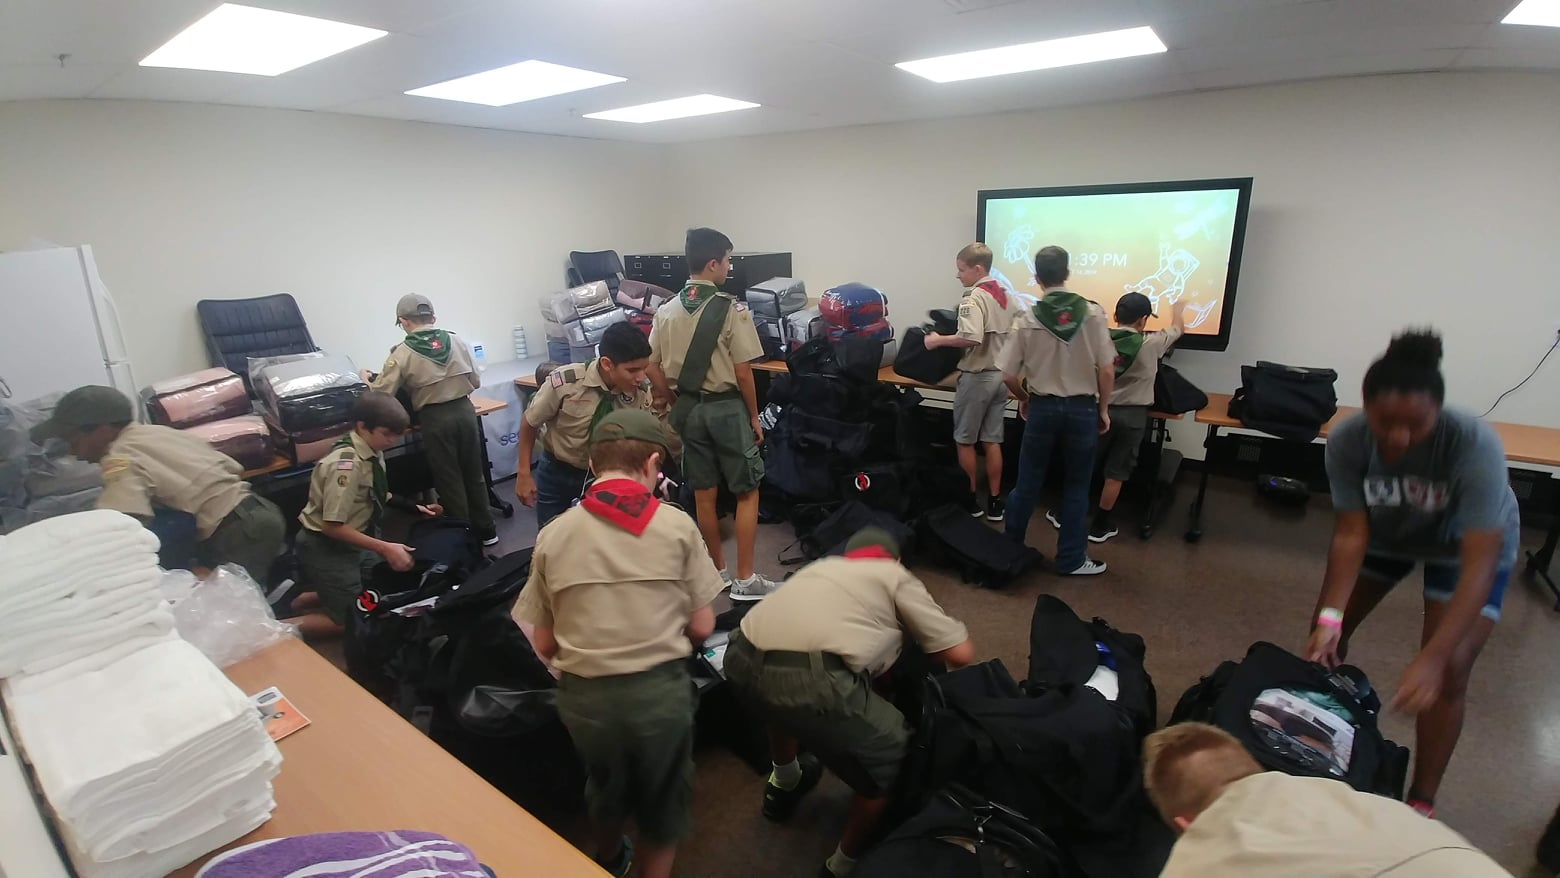 roy-maas-eagle-scout-day-1-bags-donation-2.jpg